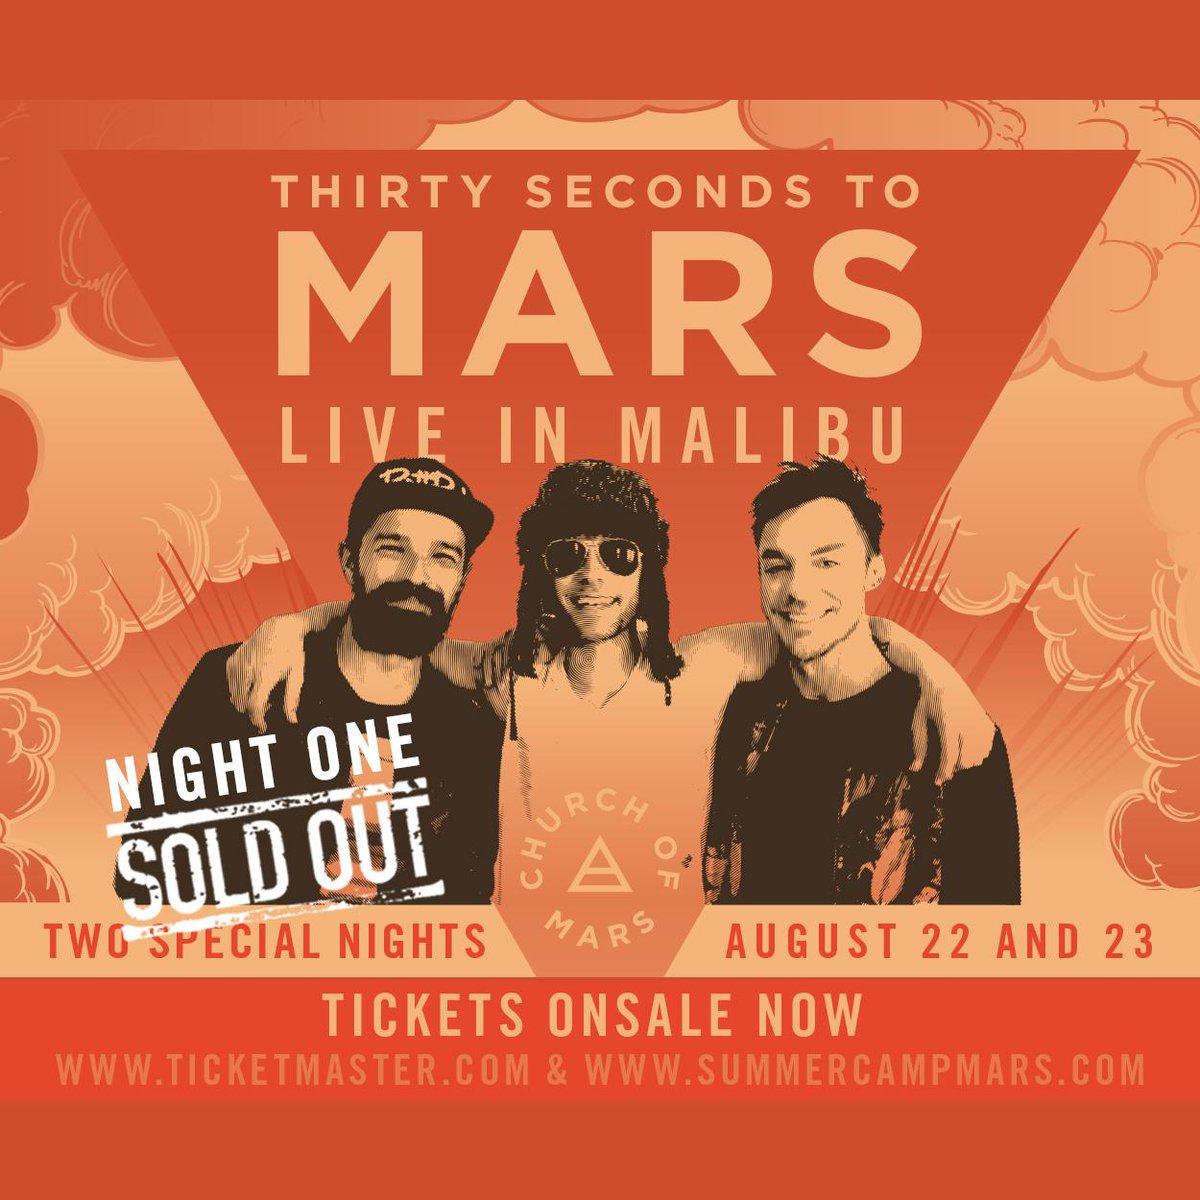 RT @30SECONDSTOMARS: NIGHT 1 SOLD OUT!!! Get tix for NIGHT 2 while they last!!! THANK YOU! → http://t.co/zllEgPaHGa http://t.co/Po3UzOtMOJ